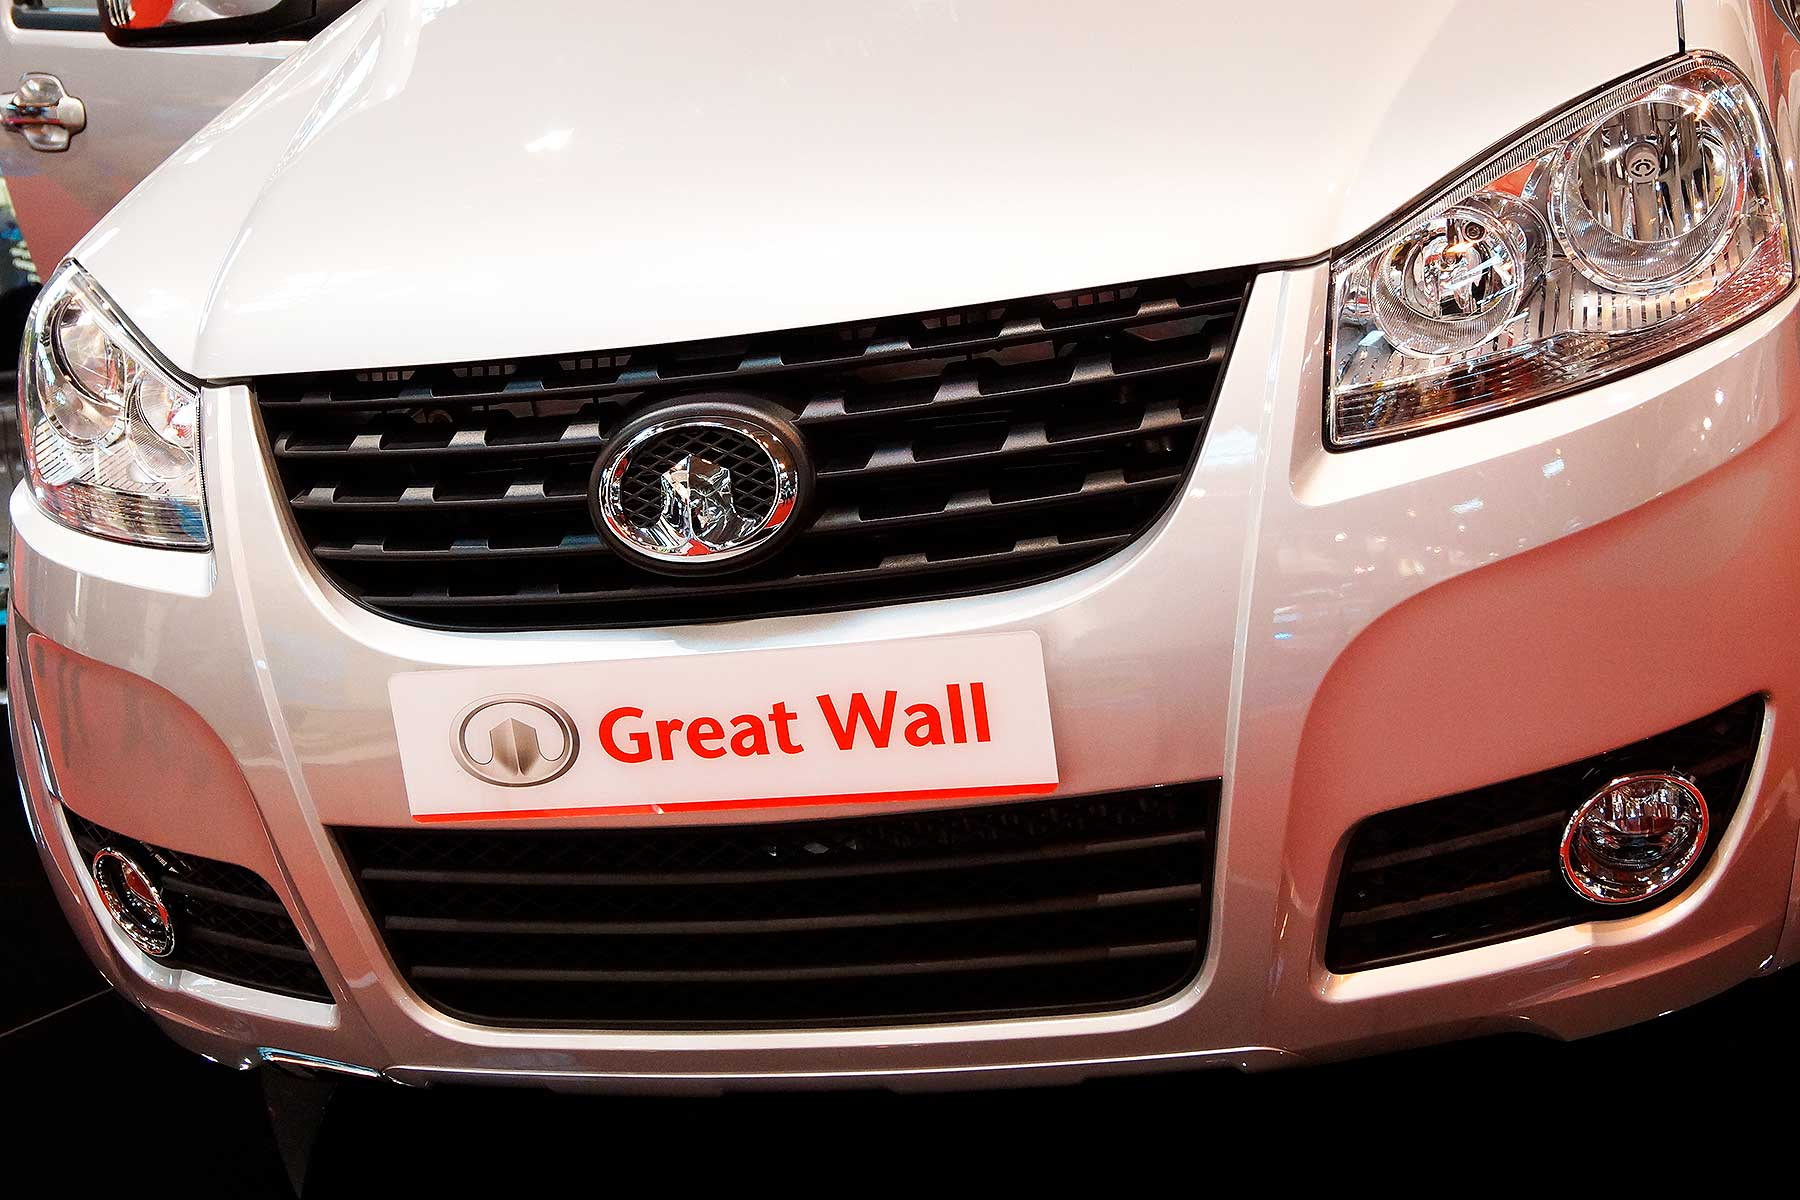 Chinese Car Brand Great Wall Wants To Fiat Chrysler